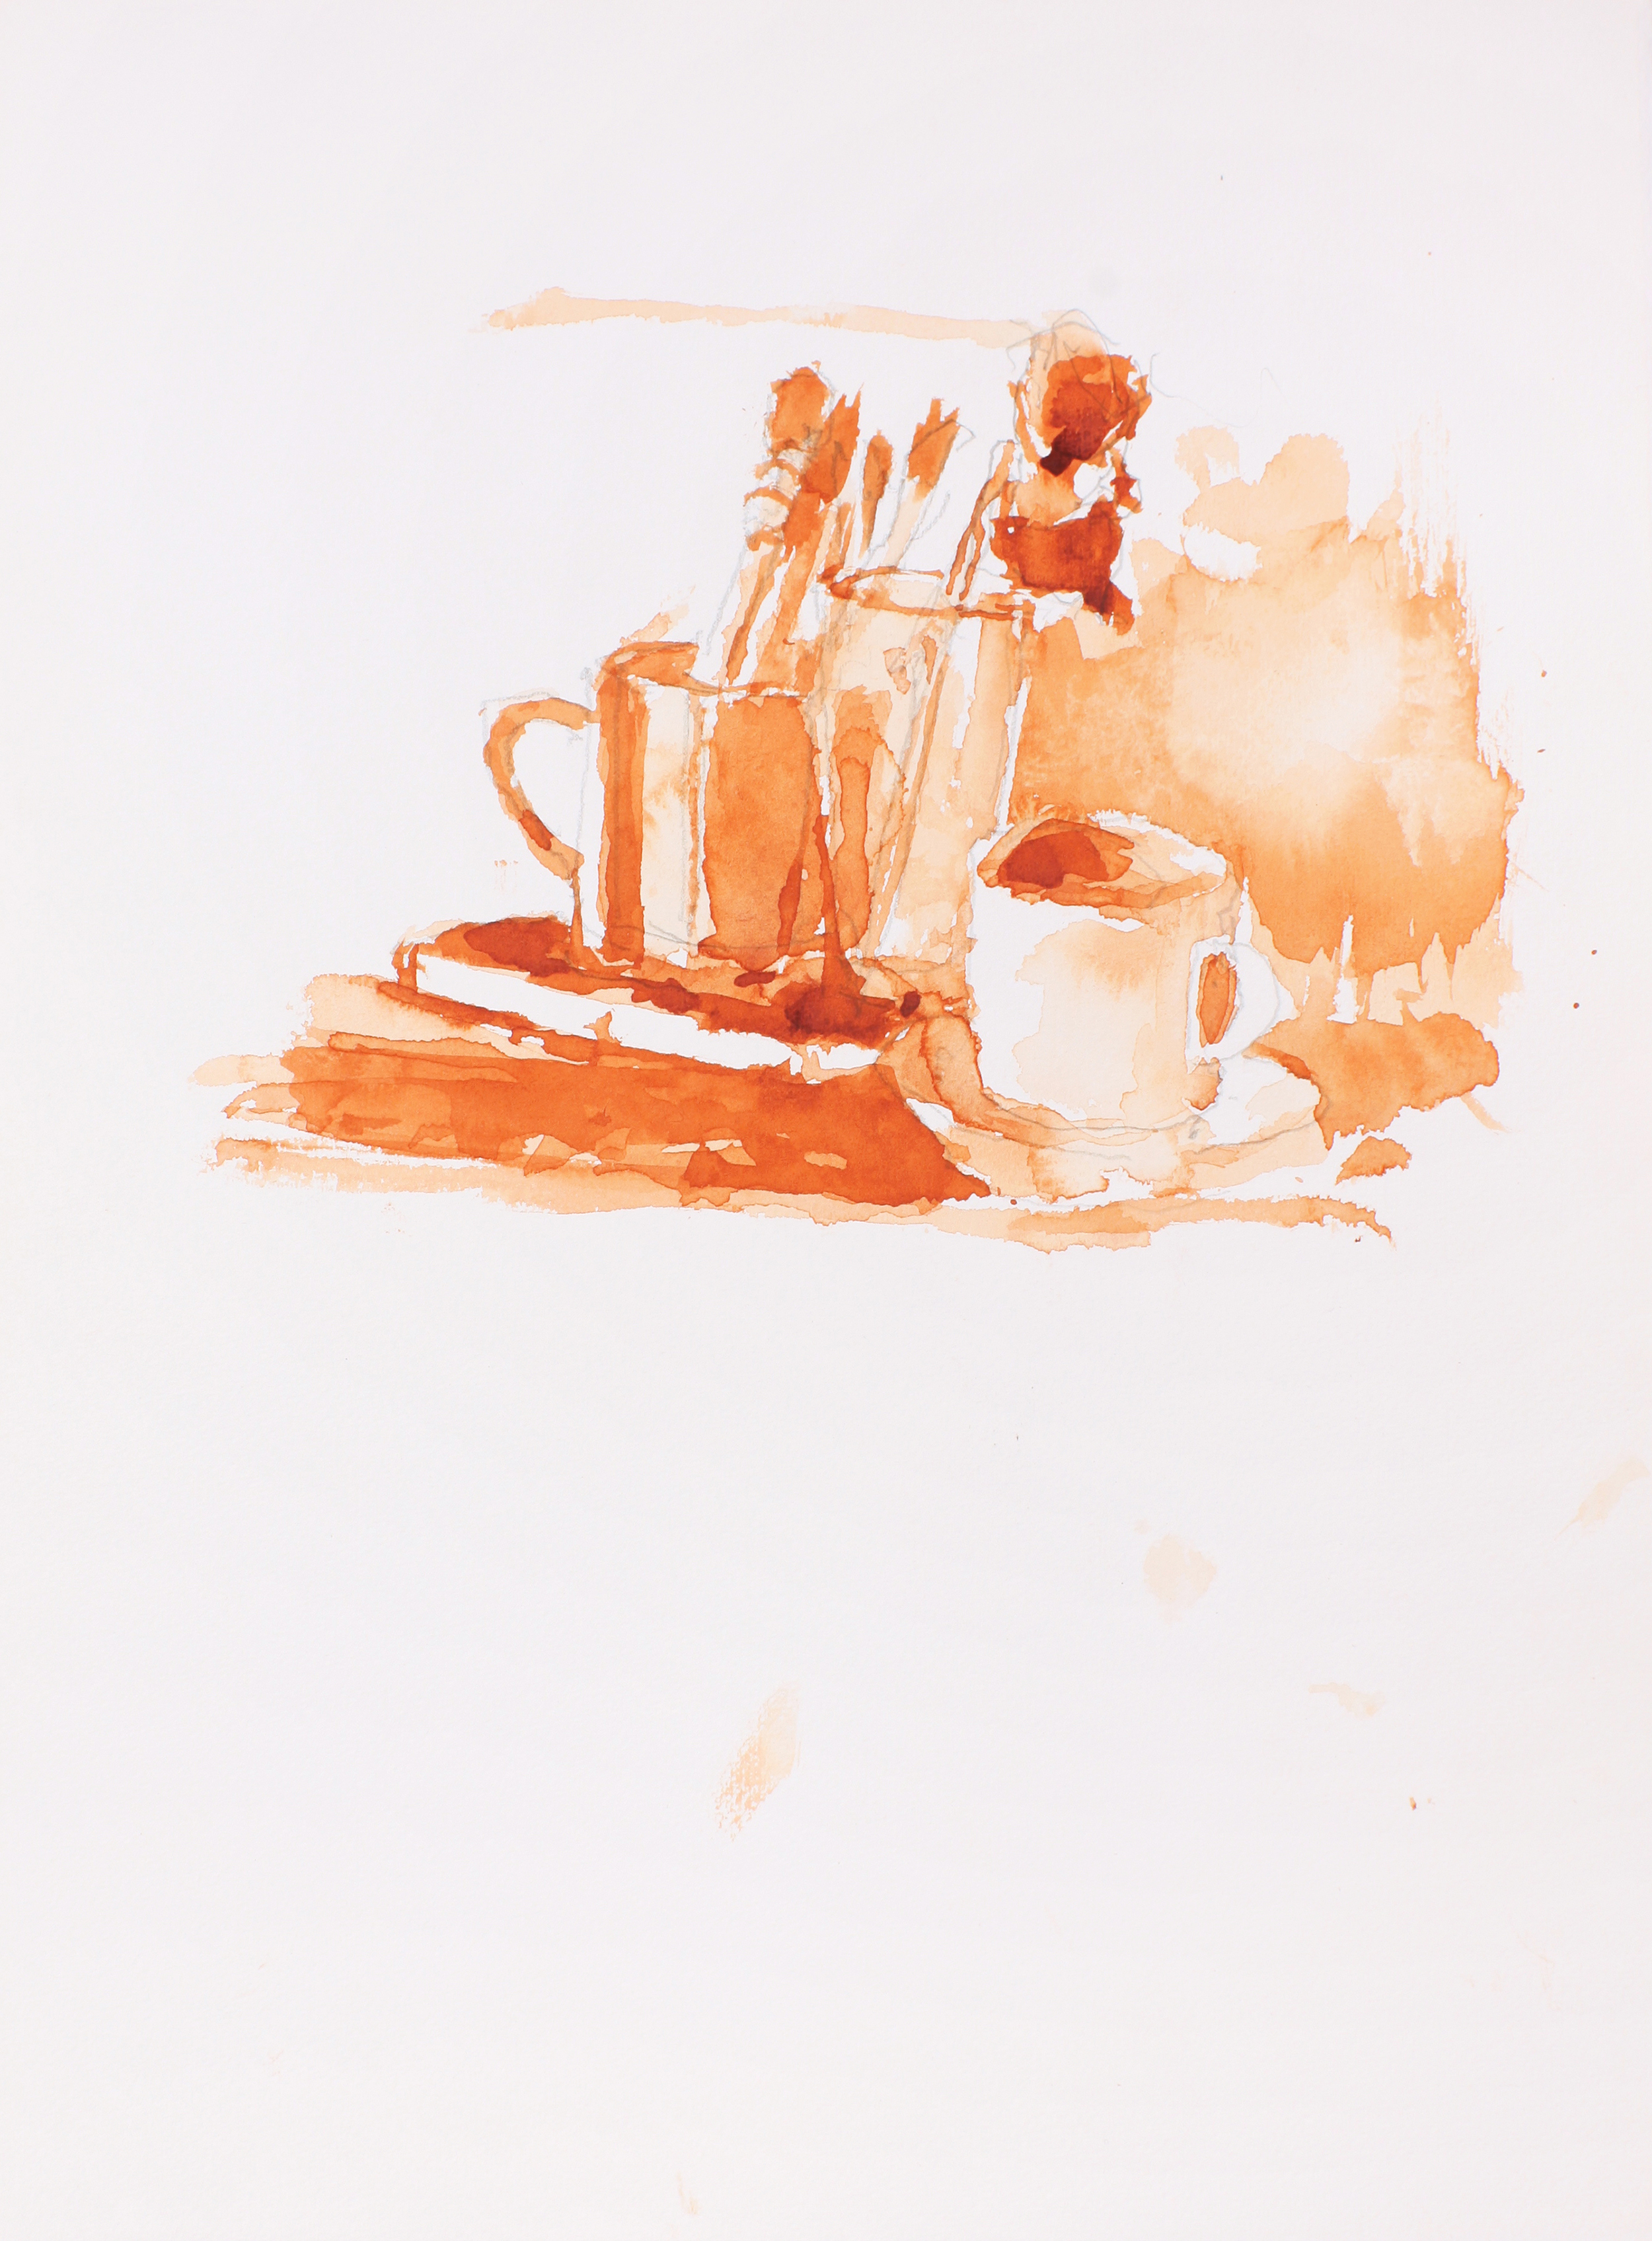 2002_Still_Life_with_Cups_and_Glass_watercolour_and_pencil_on_paper_15x11in_WPF205.jpg